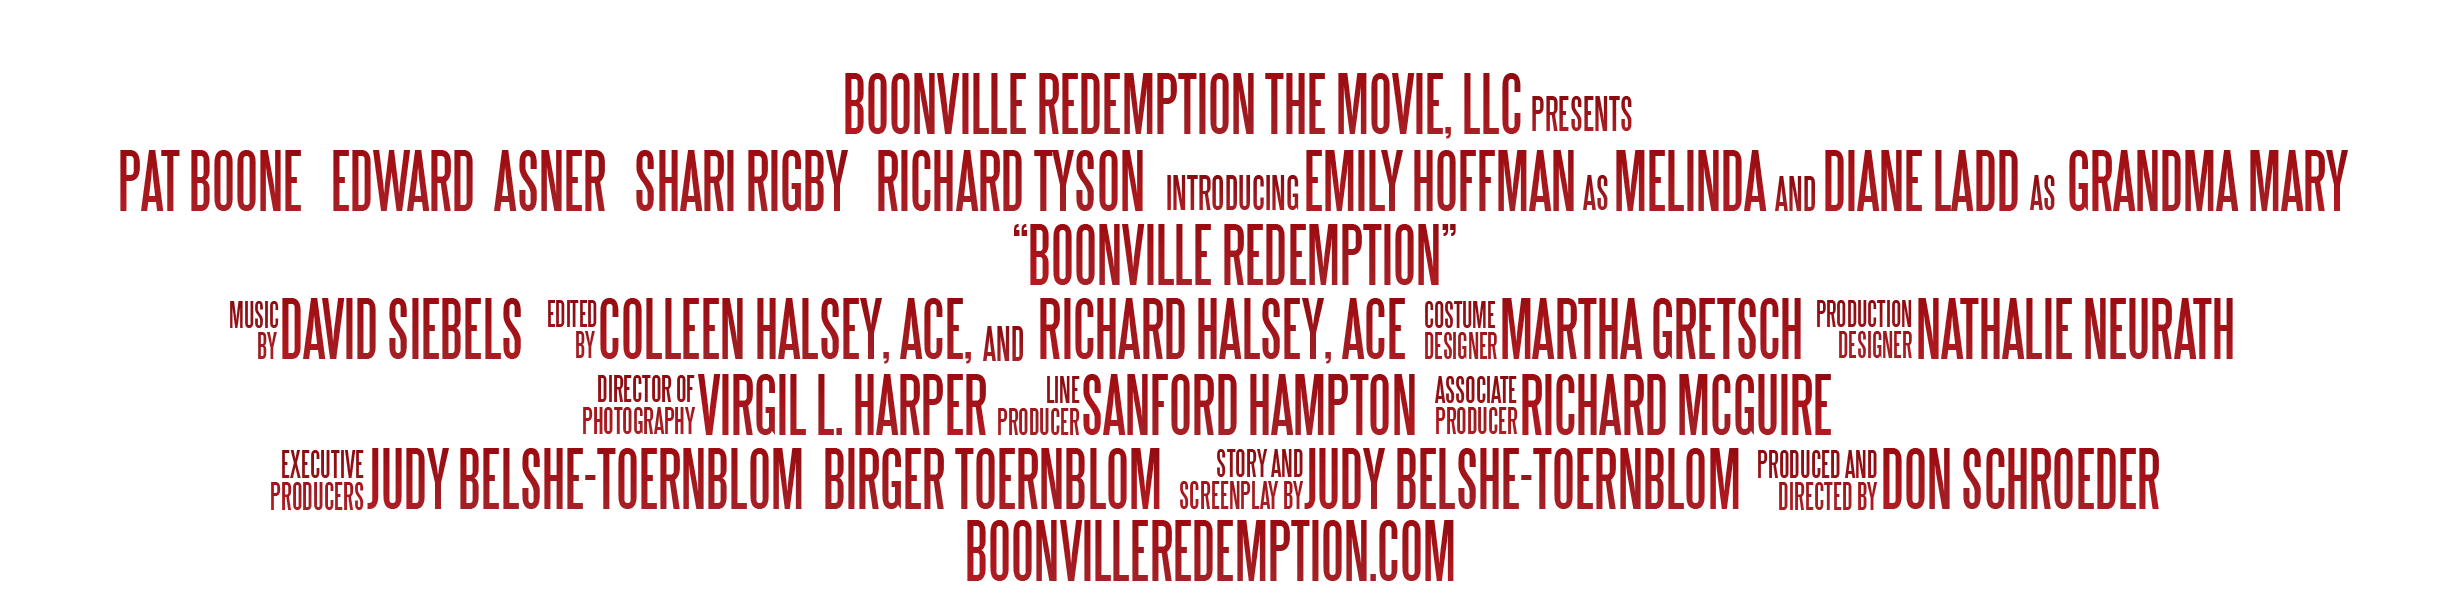 Movie credit png. Boonville redemption a story